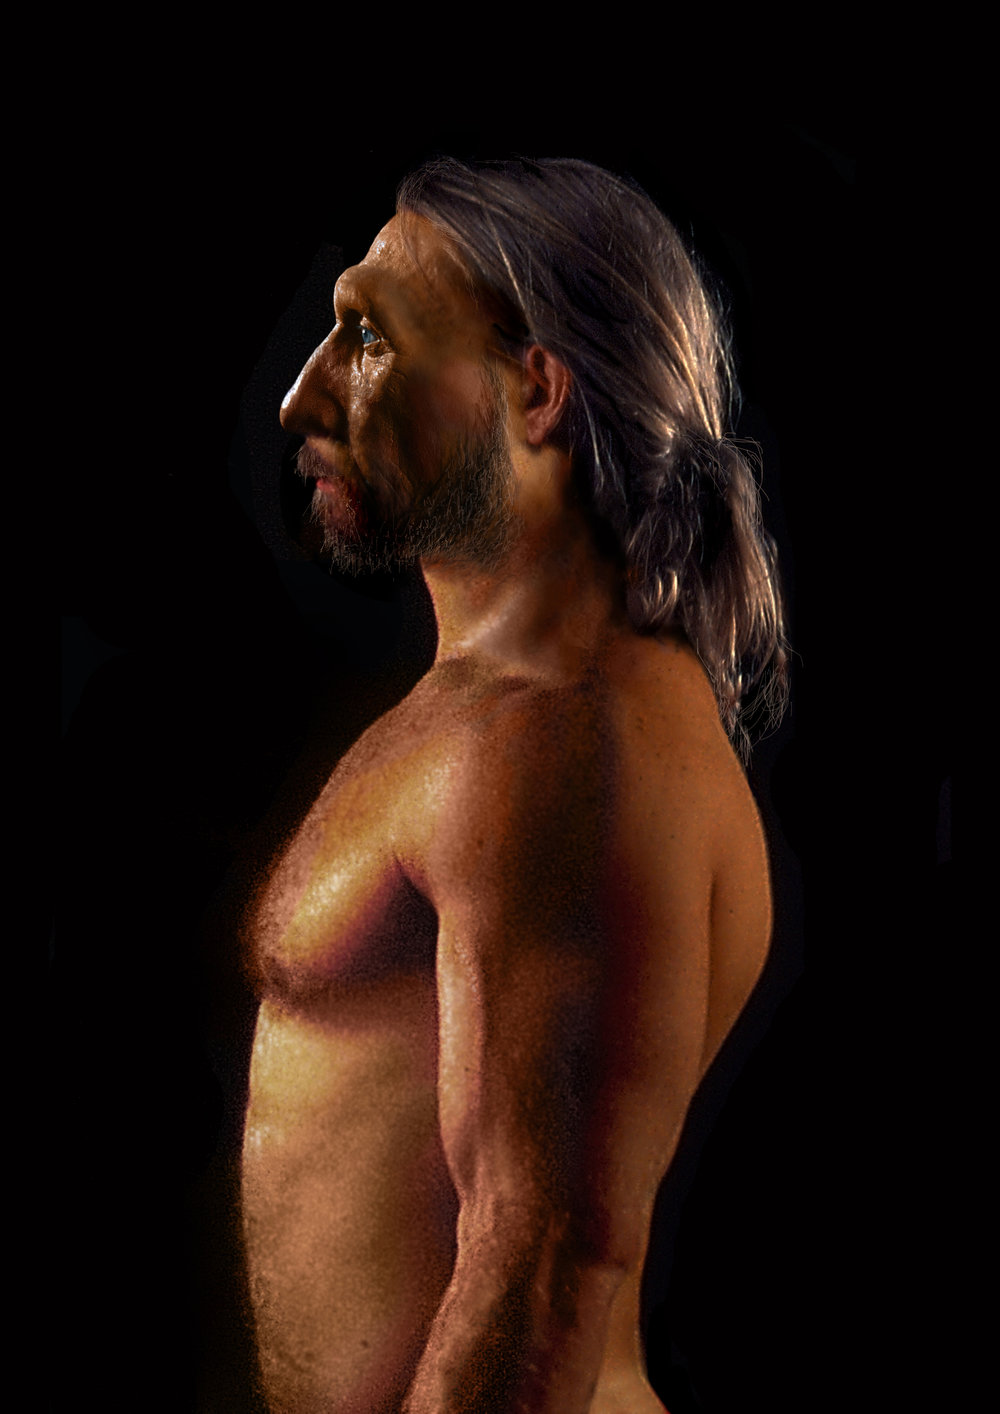 Neandertal male in profile, based on La Ferressie 1.